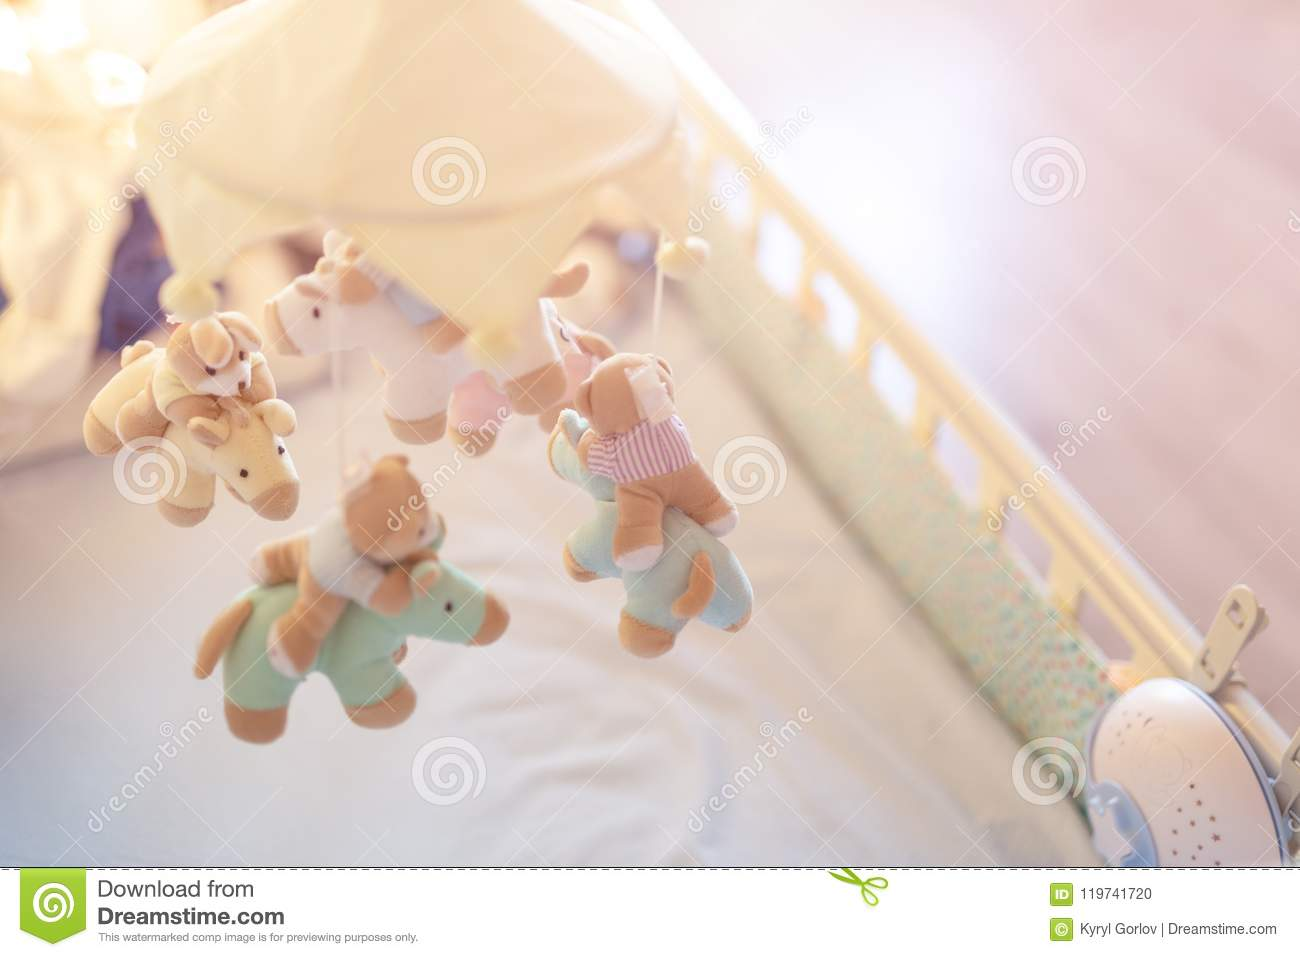 Close-up baby crib with musical animal mobile at nursery room. Hanged developing toy with plush fluffy animals. Happy parenting an